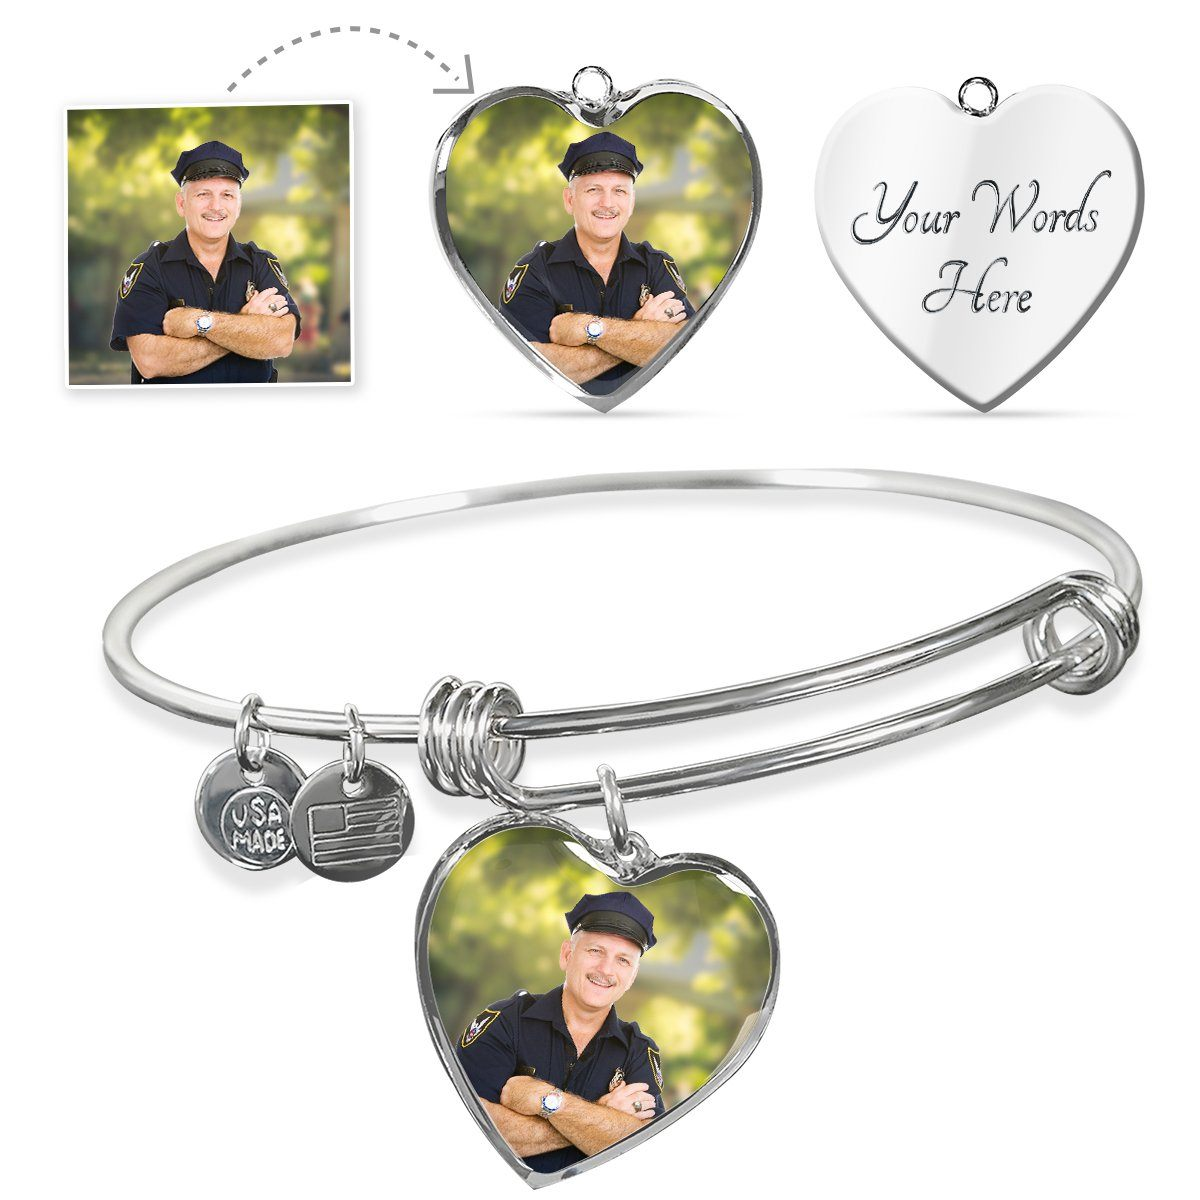 Law Enforcement Personalized Photo Heart Bangle Bracelet | Heroic Defender